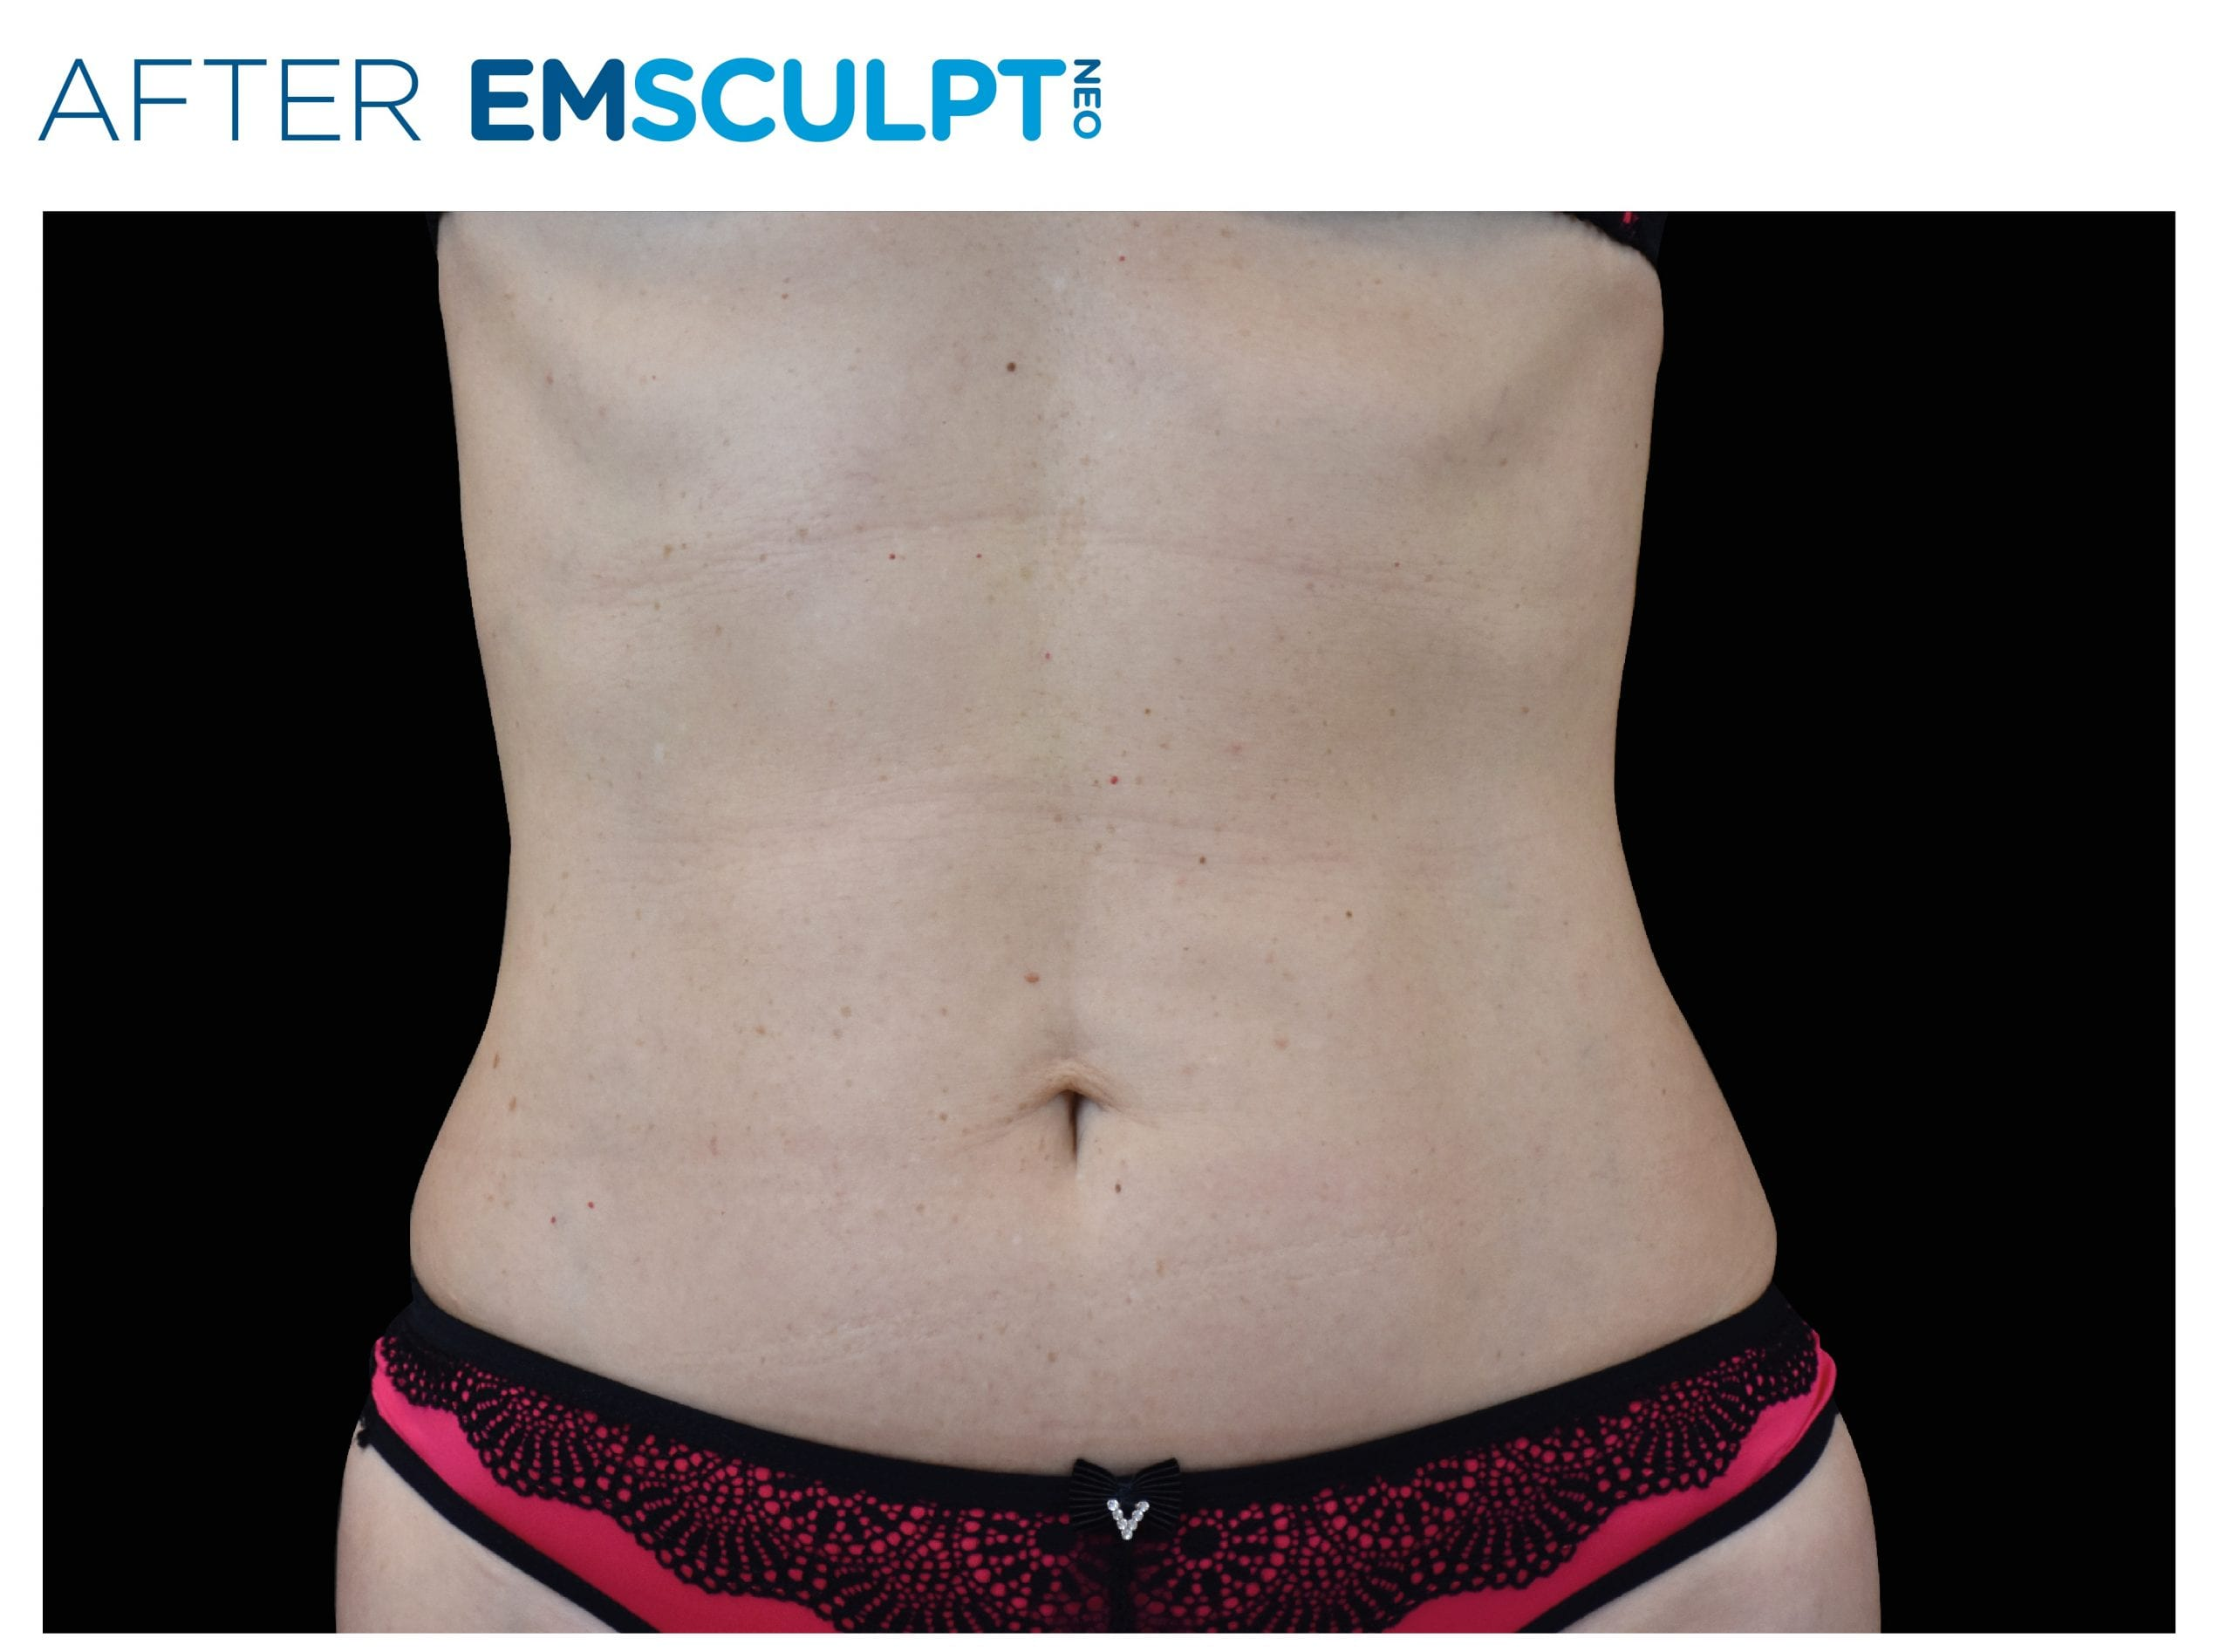 EMsculpt Neo After Treatment photo woman